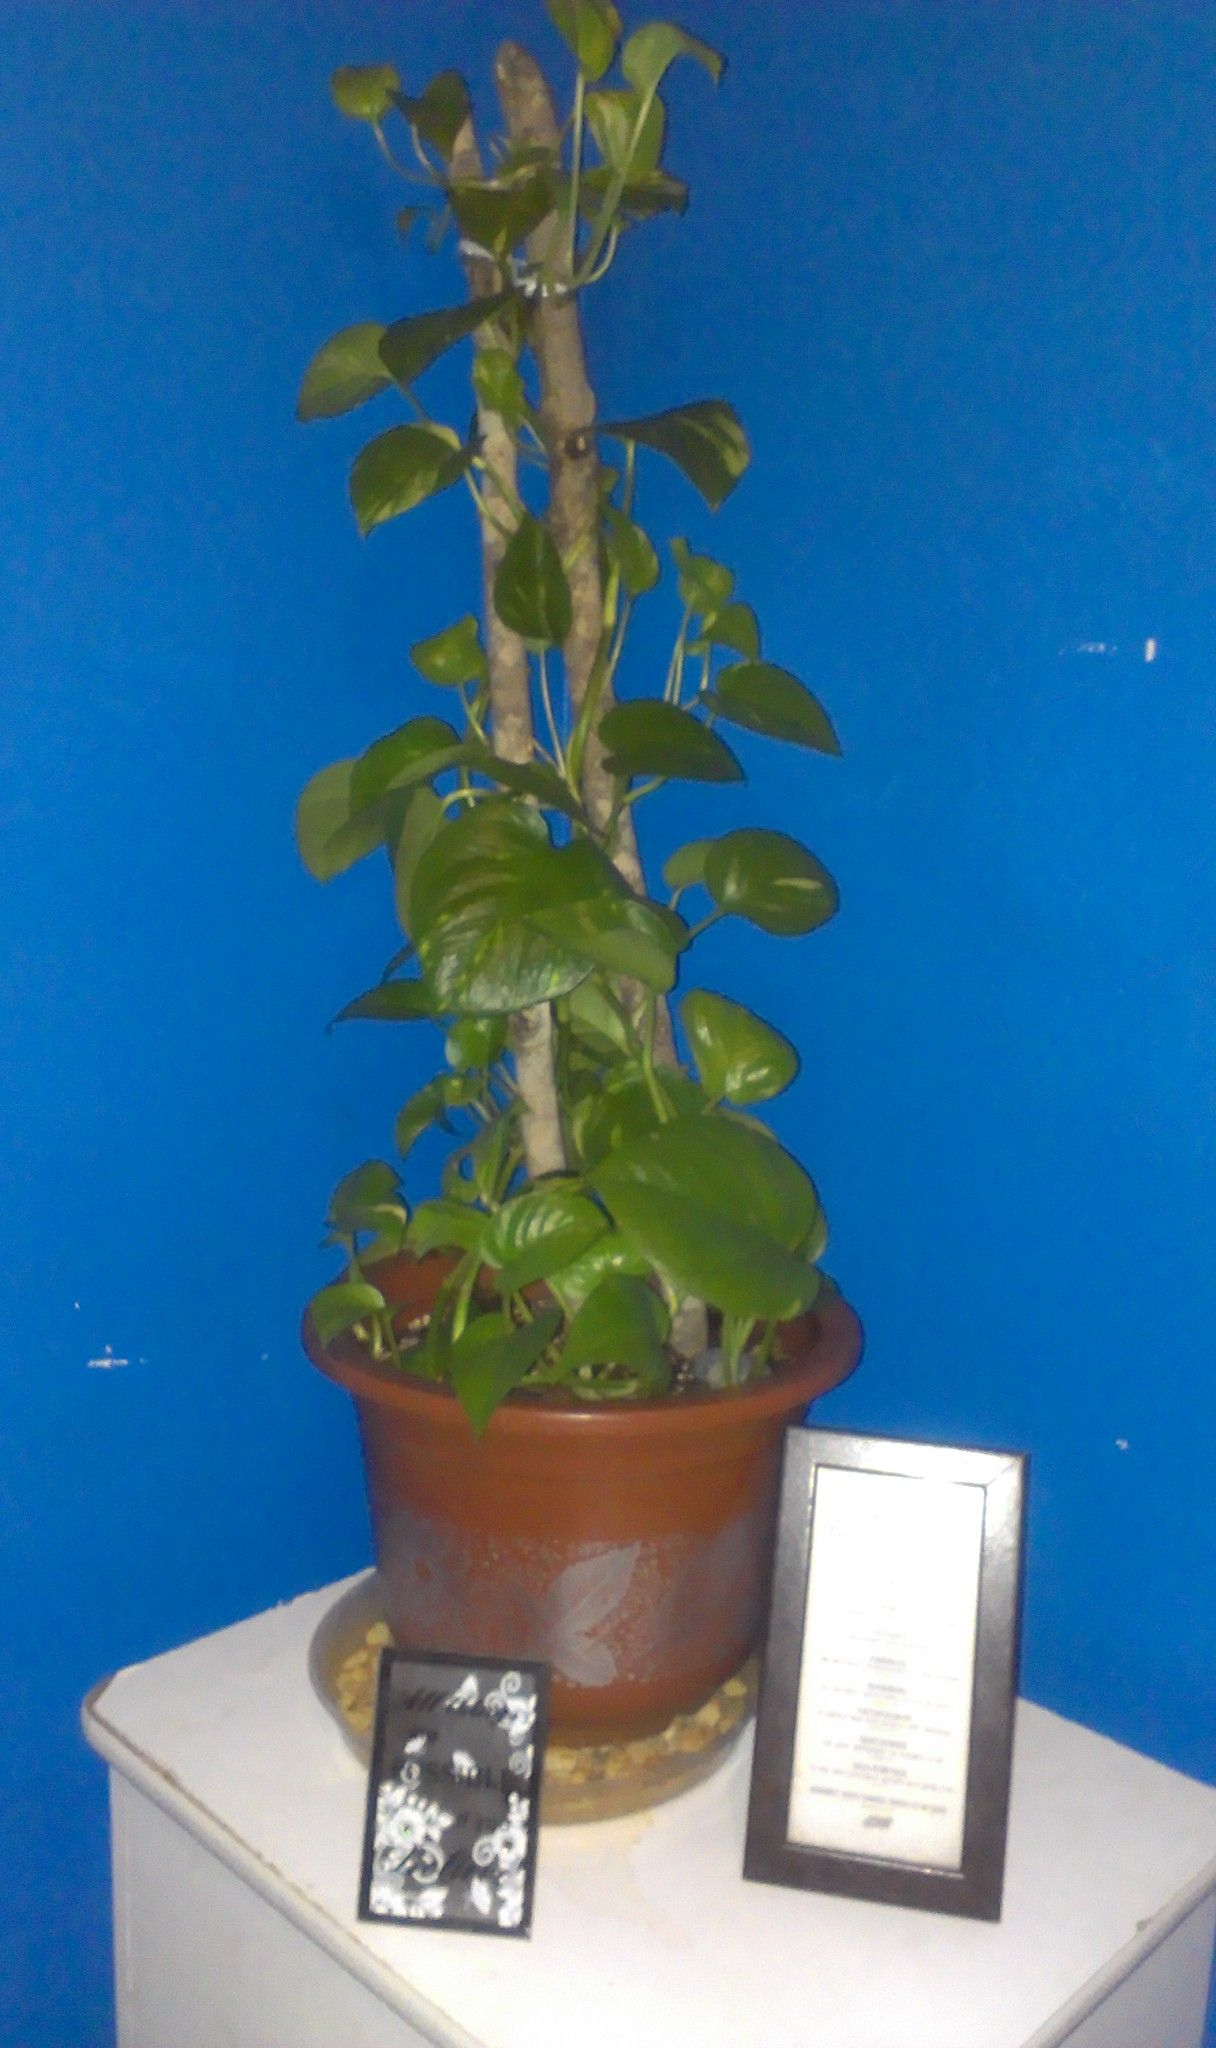 Repotted Golden Pothos after I trimmed the long hanging vines that